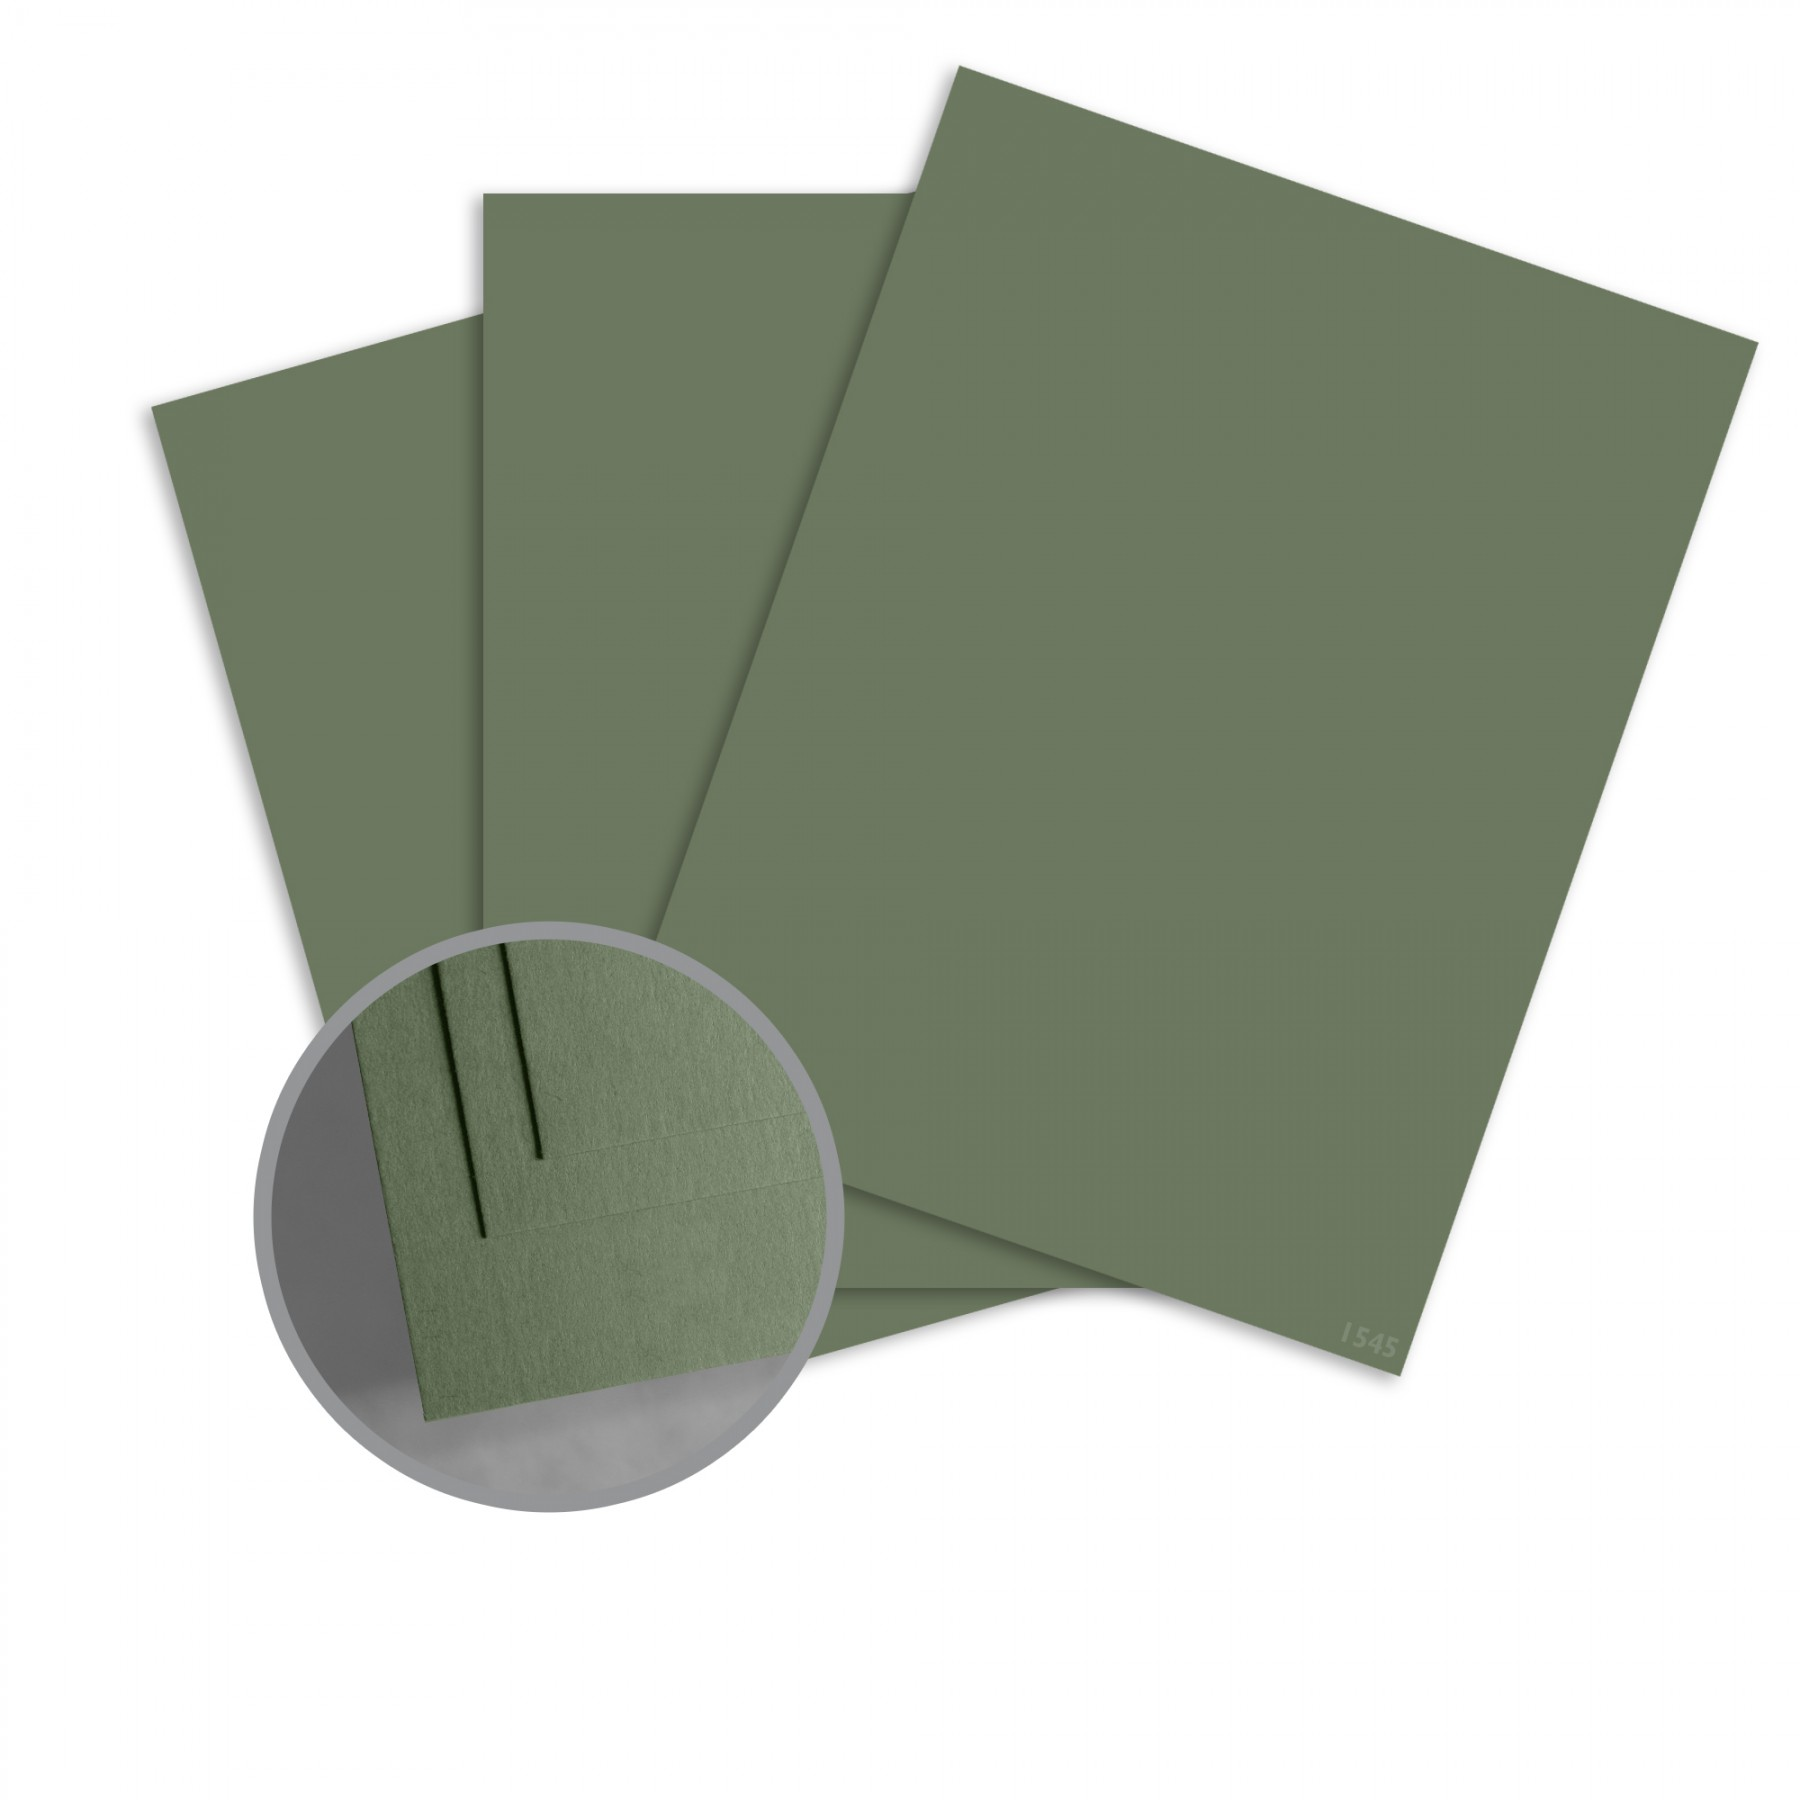 80lb paper Cardstock paper no promo code required excludes gift cards, previous purchase, custom invitations, canvas prints & photo center purchases.